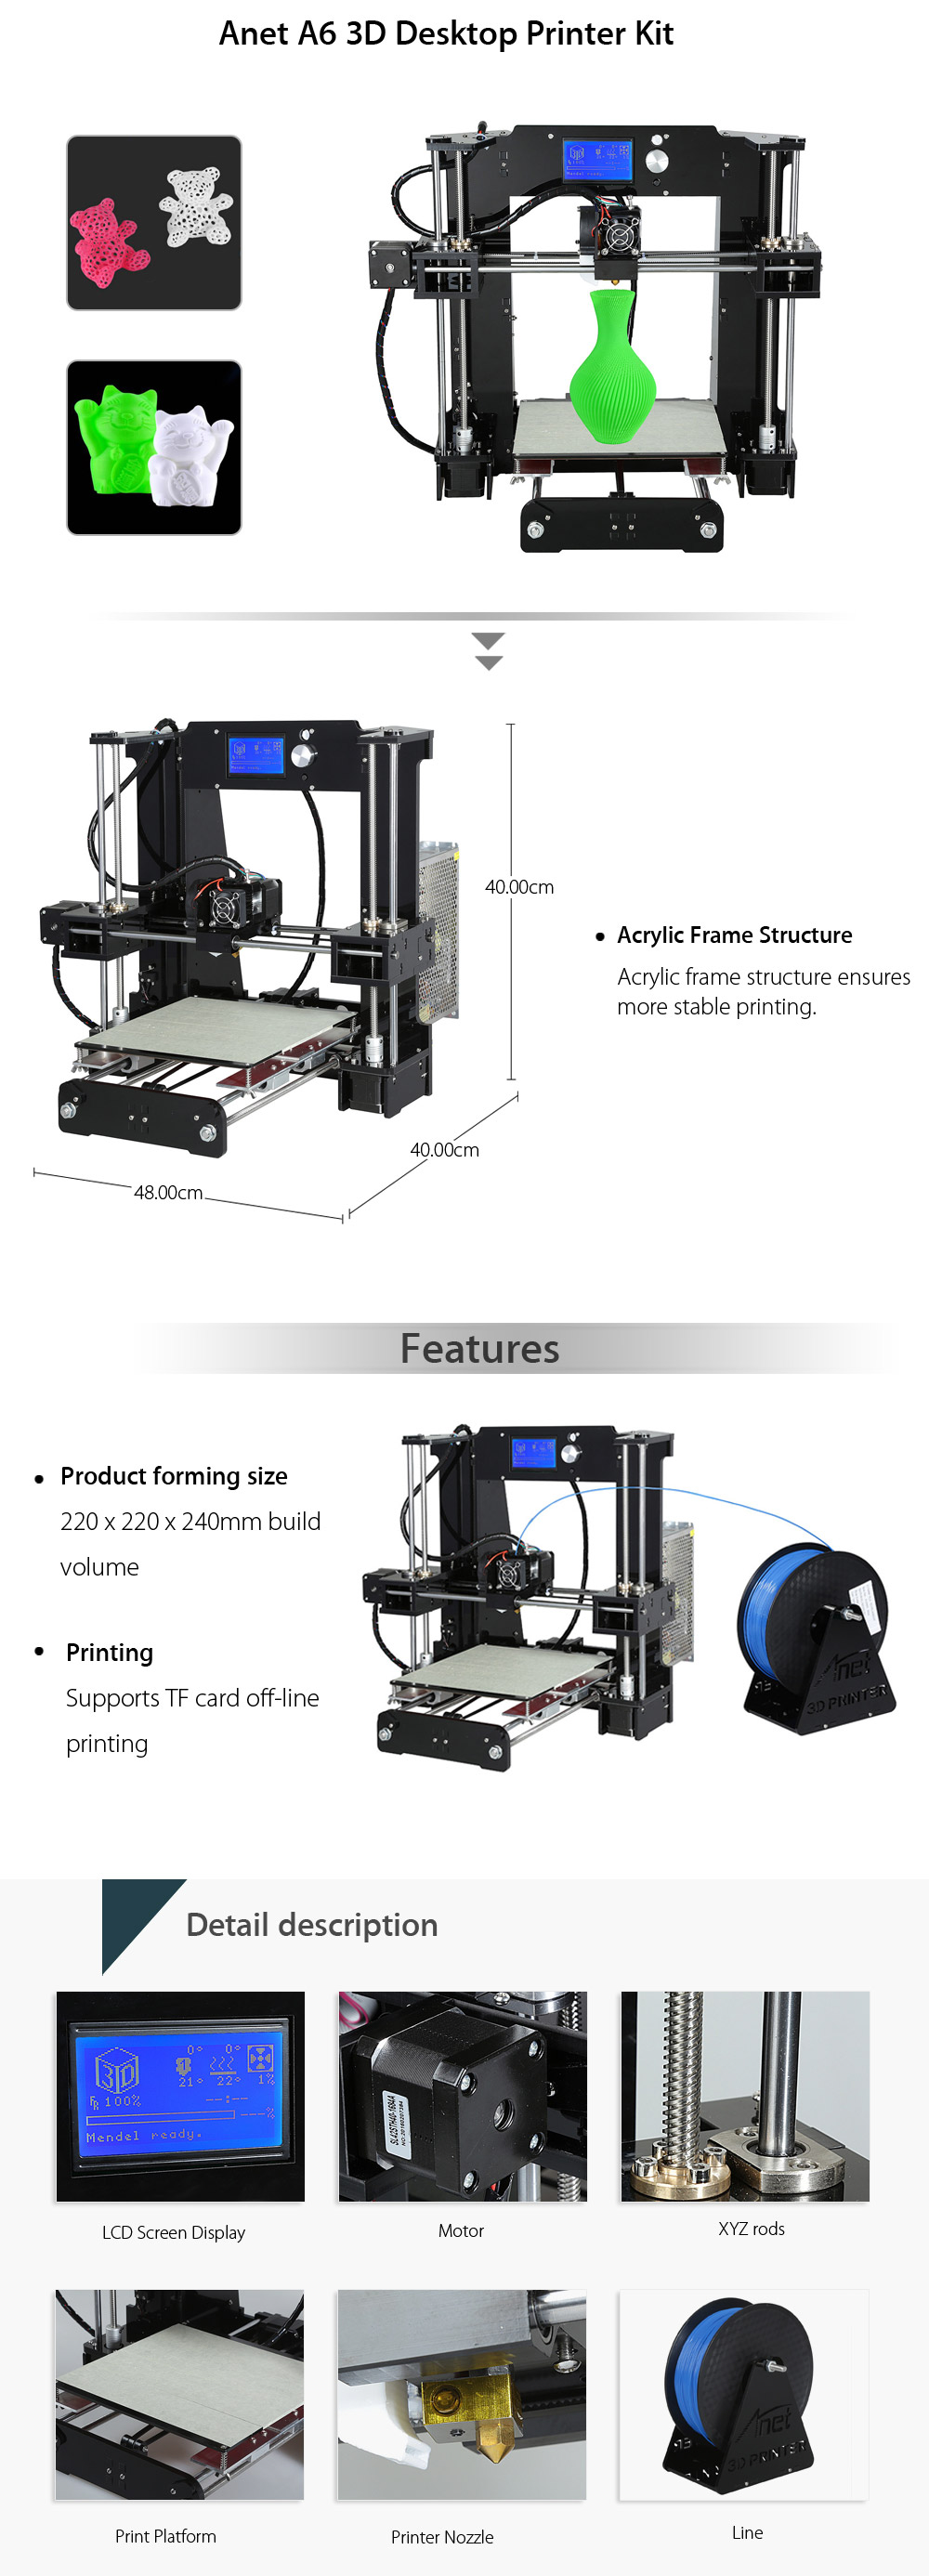 Anet A6 3D Desktop Printer Kit LCD Screen Display with TF Card Off-line Printing Function